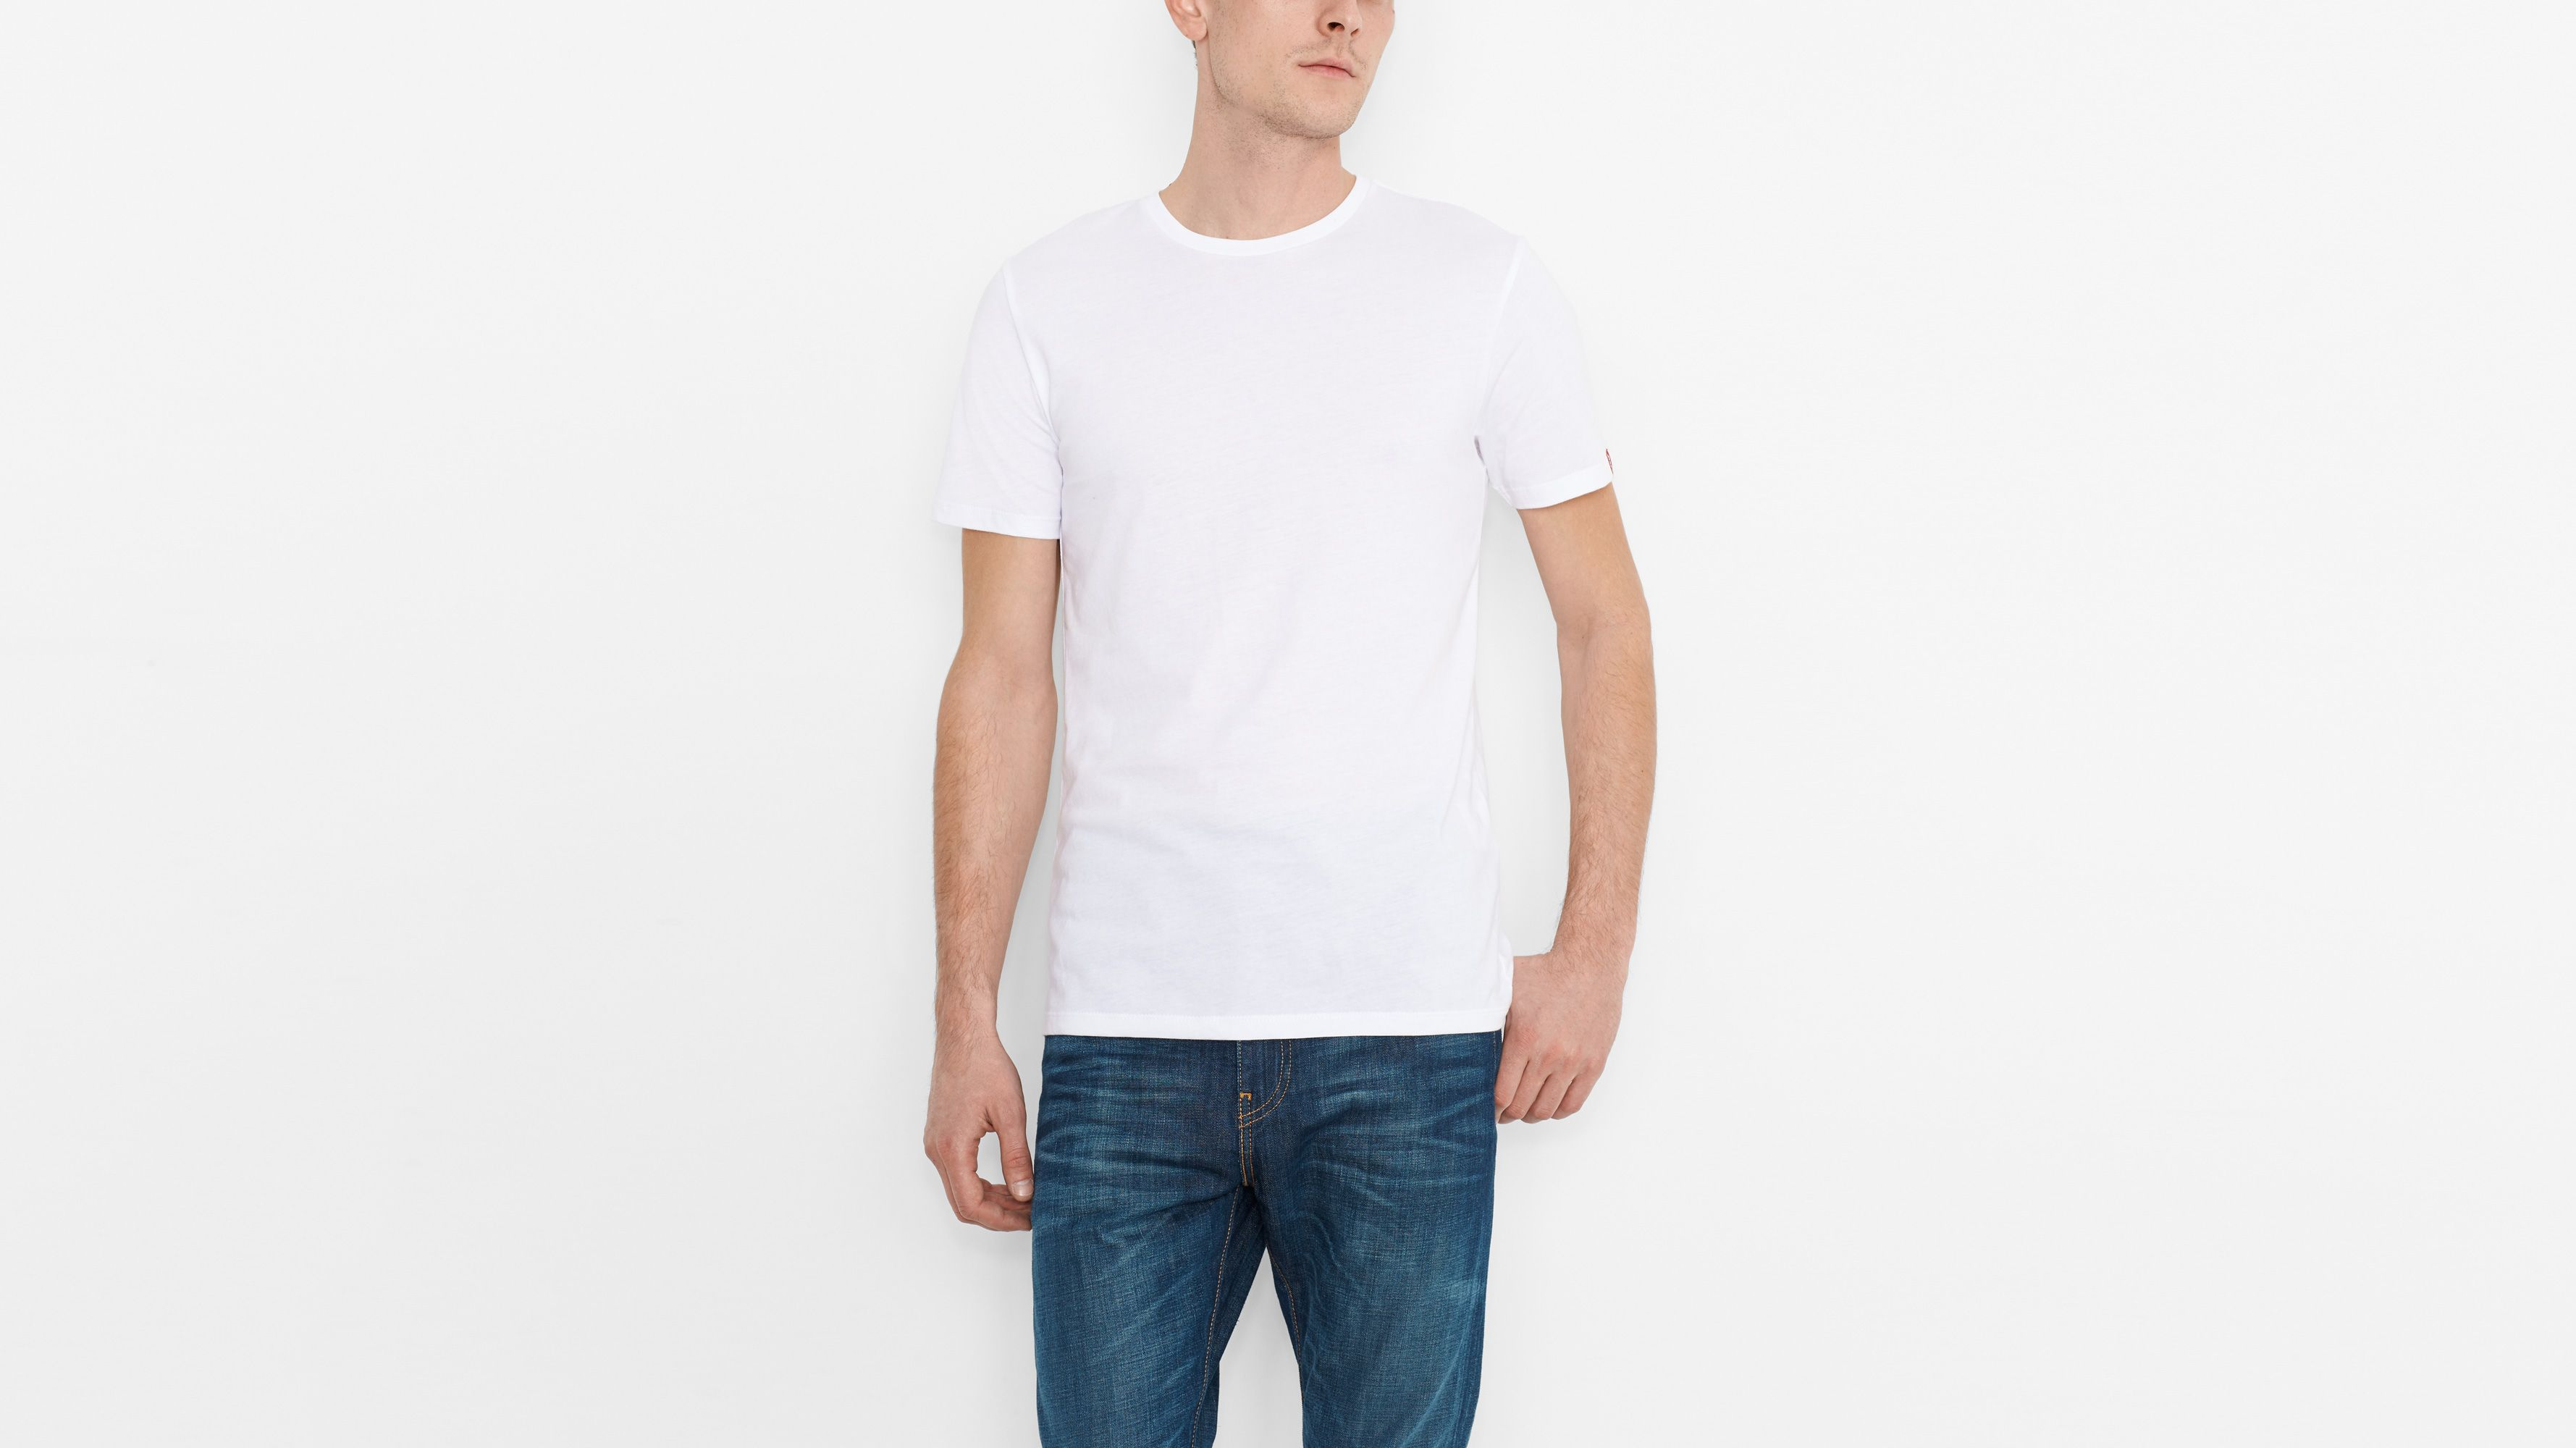 Slim Fit Tees (2-pack) - Heather Grey & White